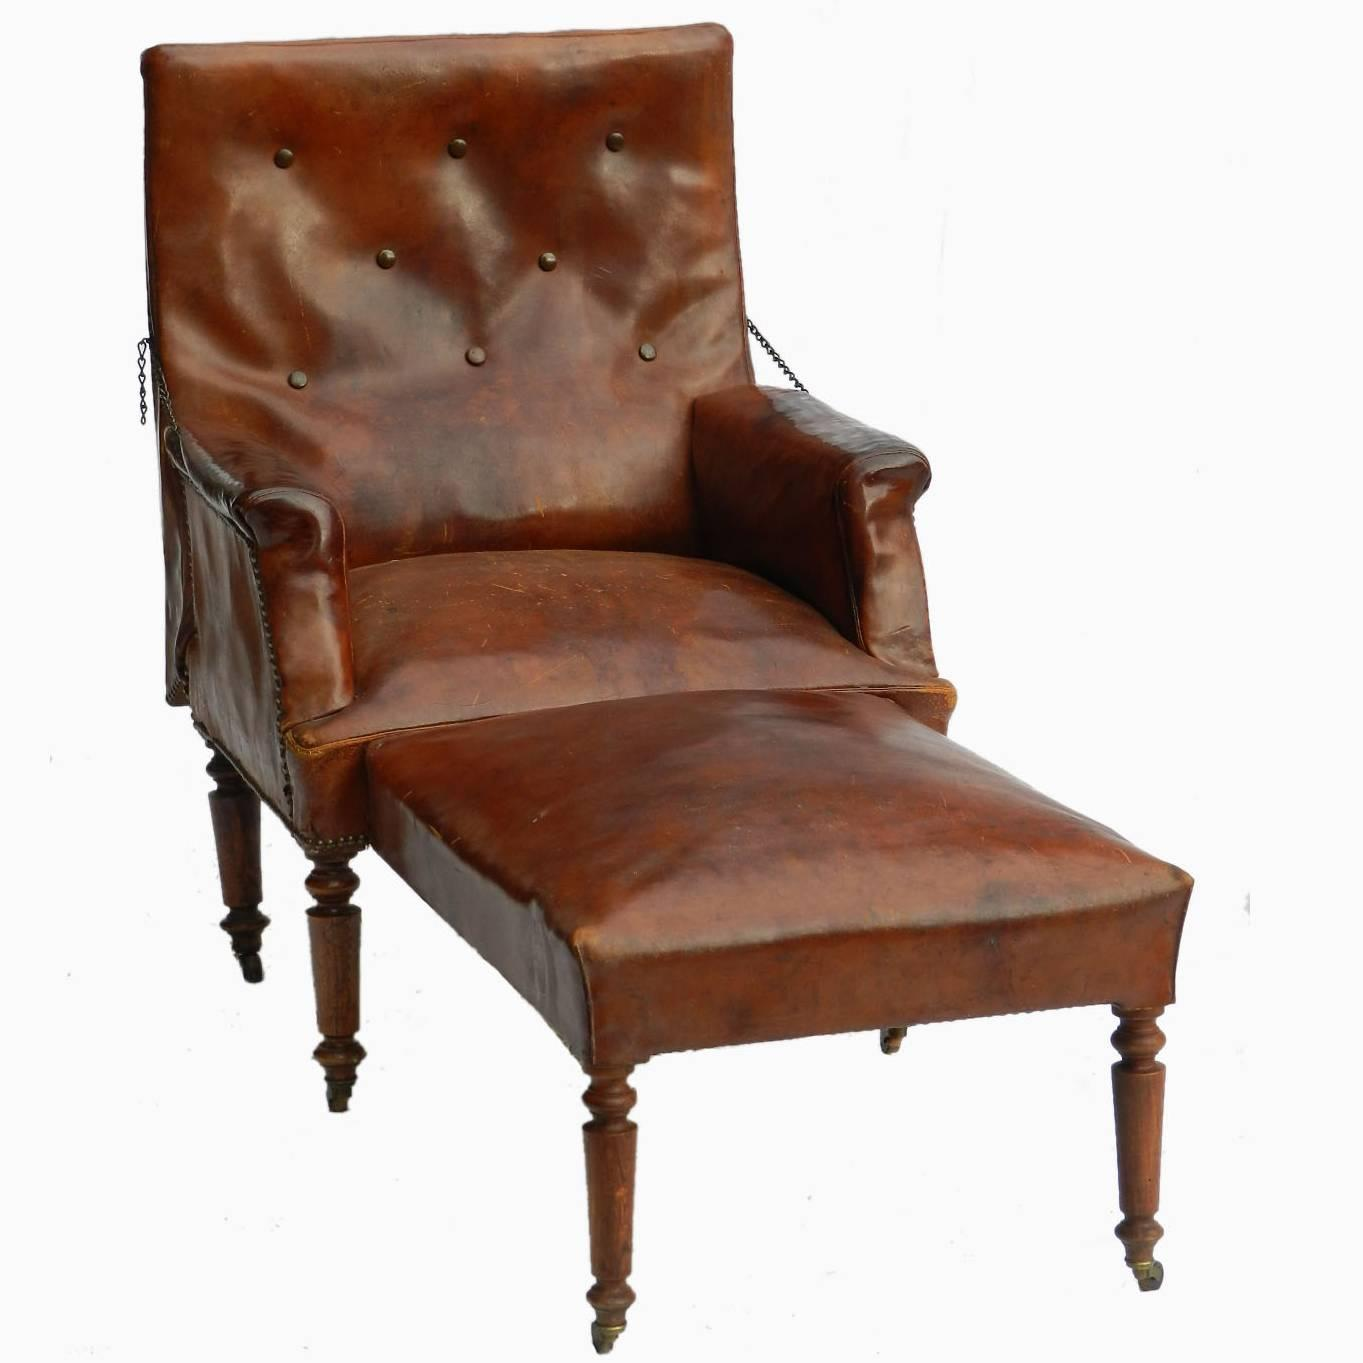 french leather club chair reclining armchair recliner circa 1920 for sale at 1stdibs. Black Bedroom Furniture Sets. Home Design Ideas